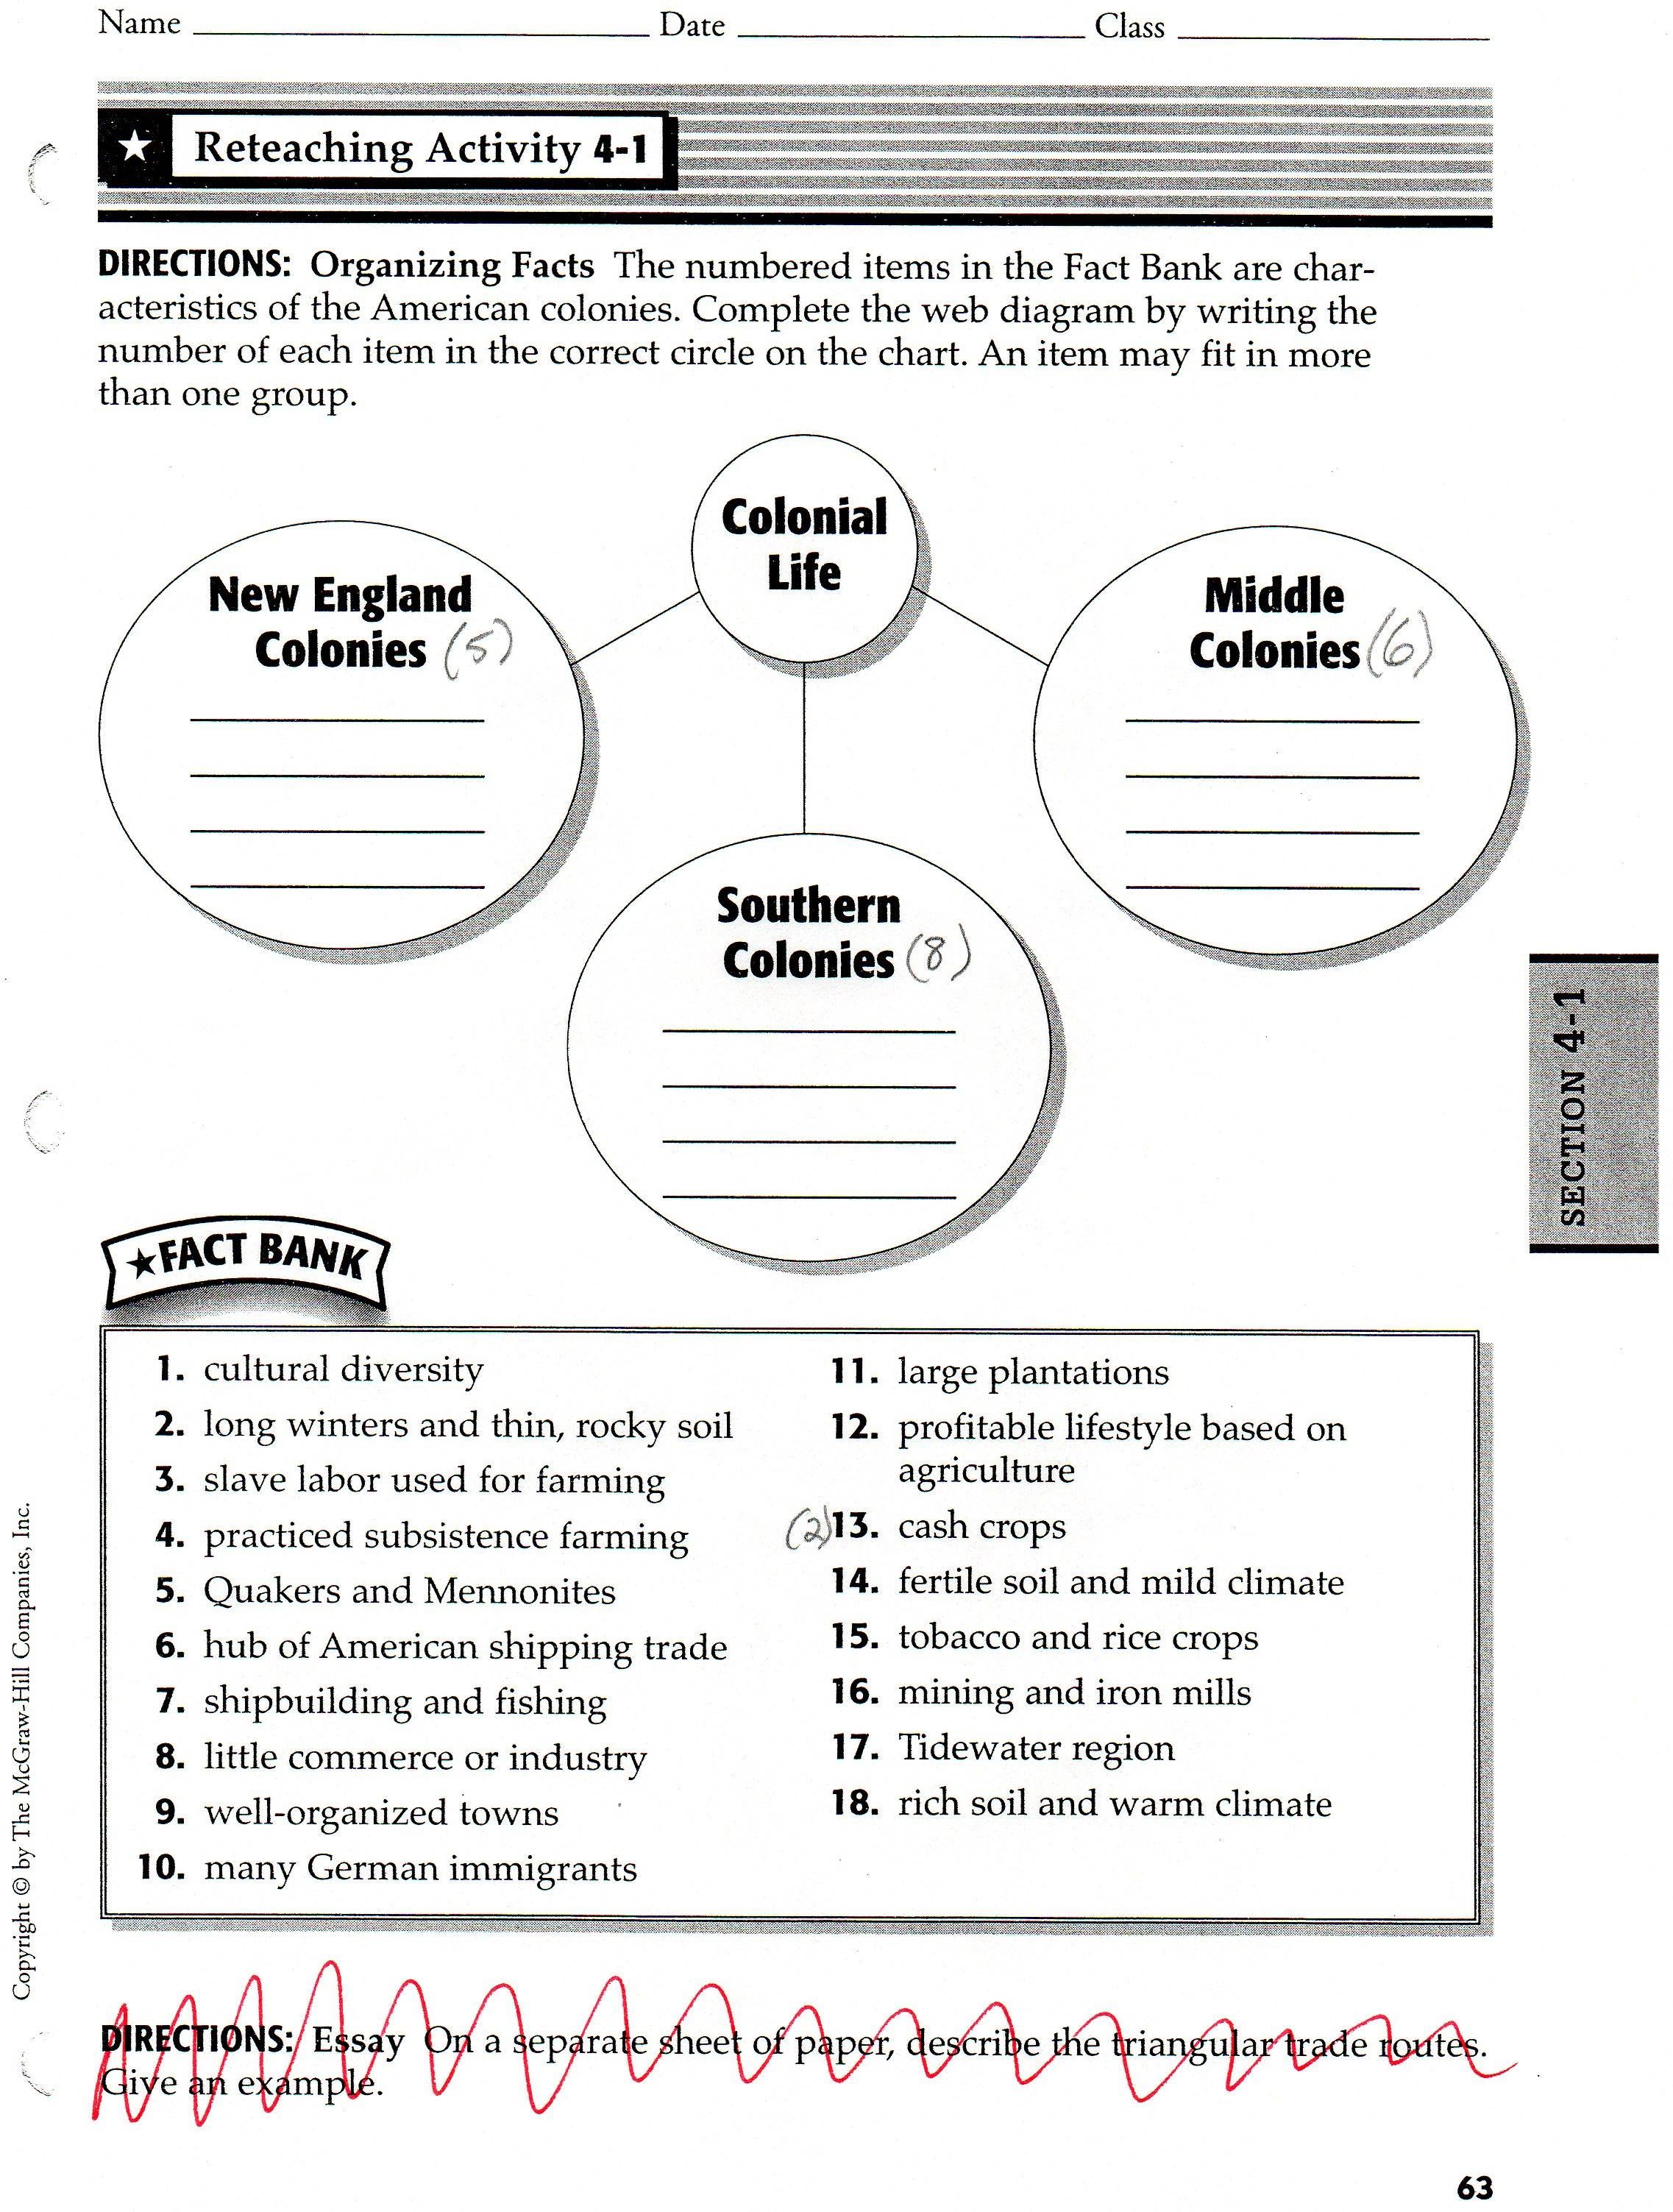 Family Traditions Worksheet For Elementary